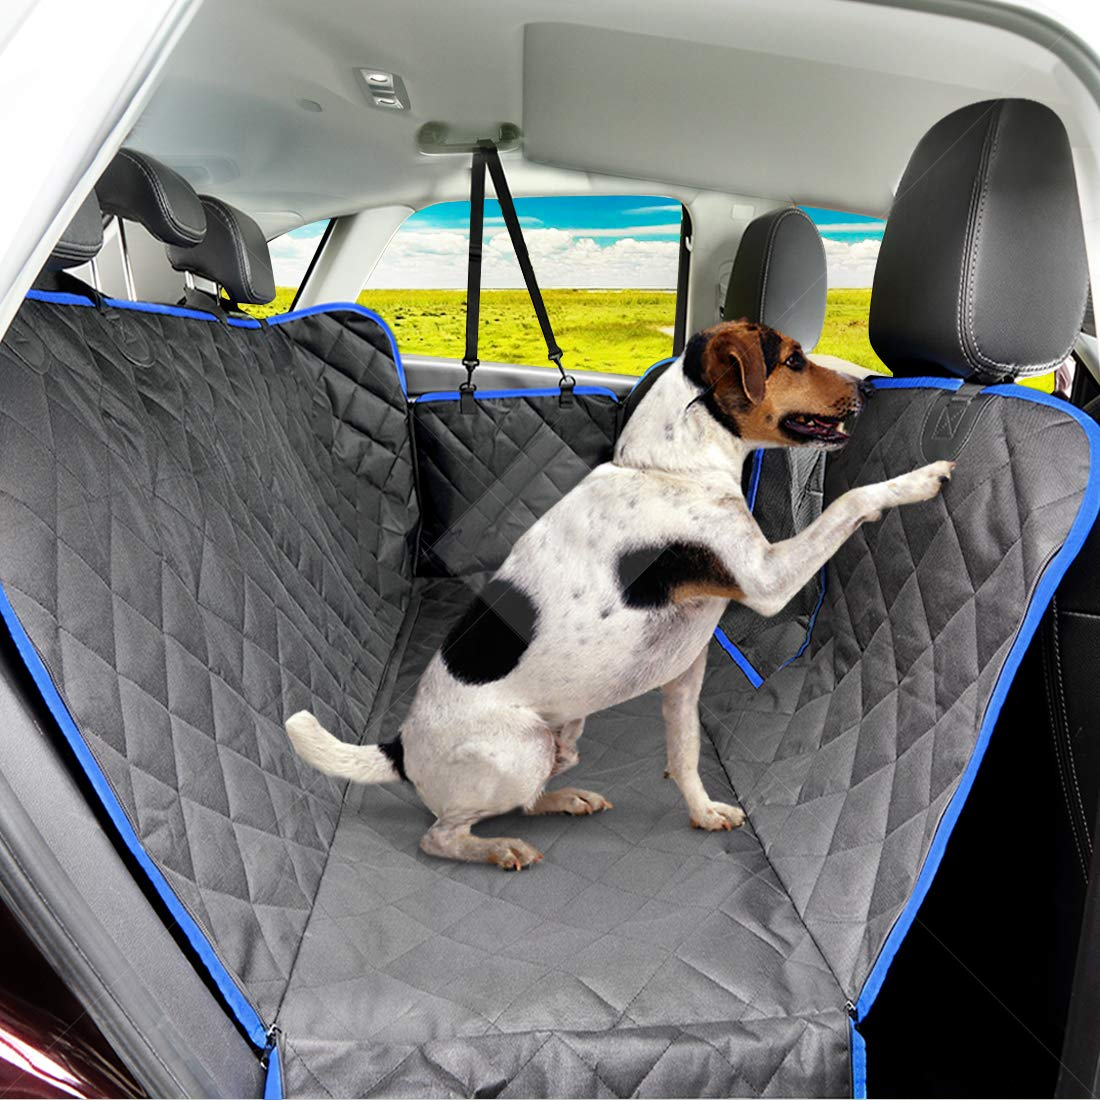 SUPSOO Dog Car Seat Cover Waterproof Durable Anti-Scratch Nonslip Back Seat Pet Protection Dog Travel Hammock with Mesh Window and Side Flaps for Cars/Trucks/SUV by SUPSOO (Image #9)